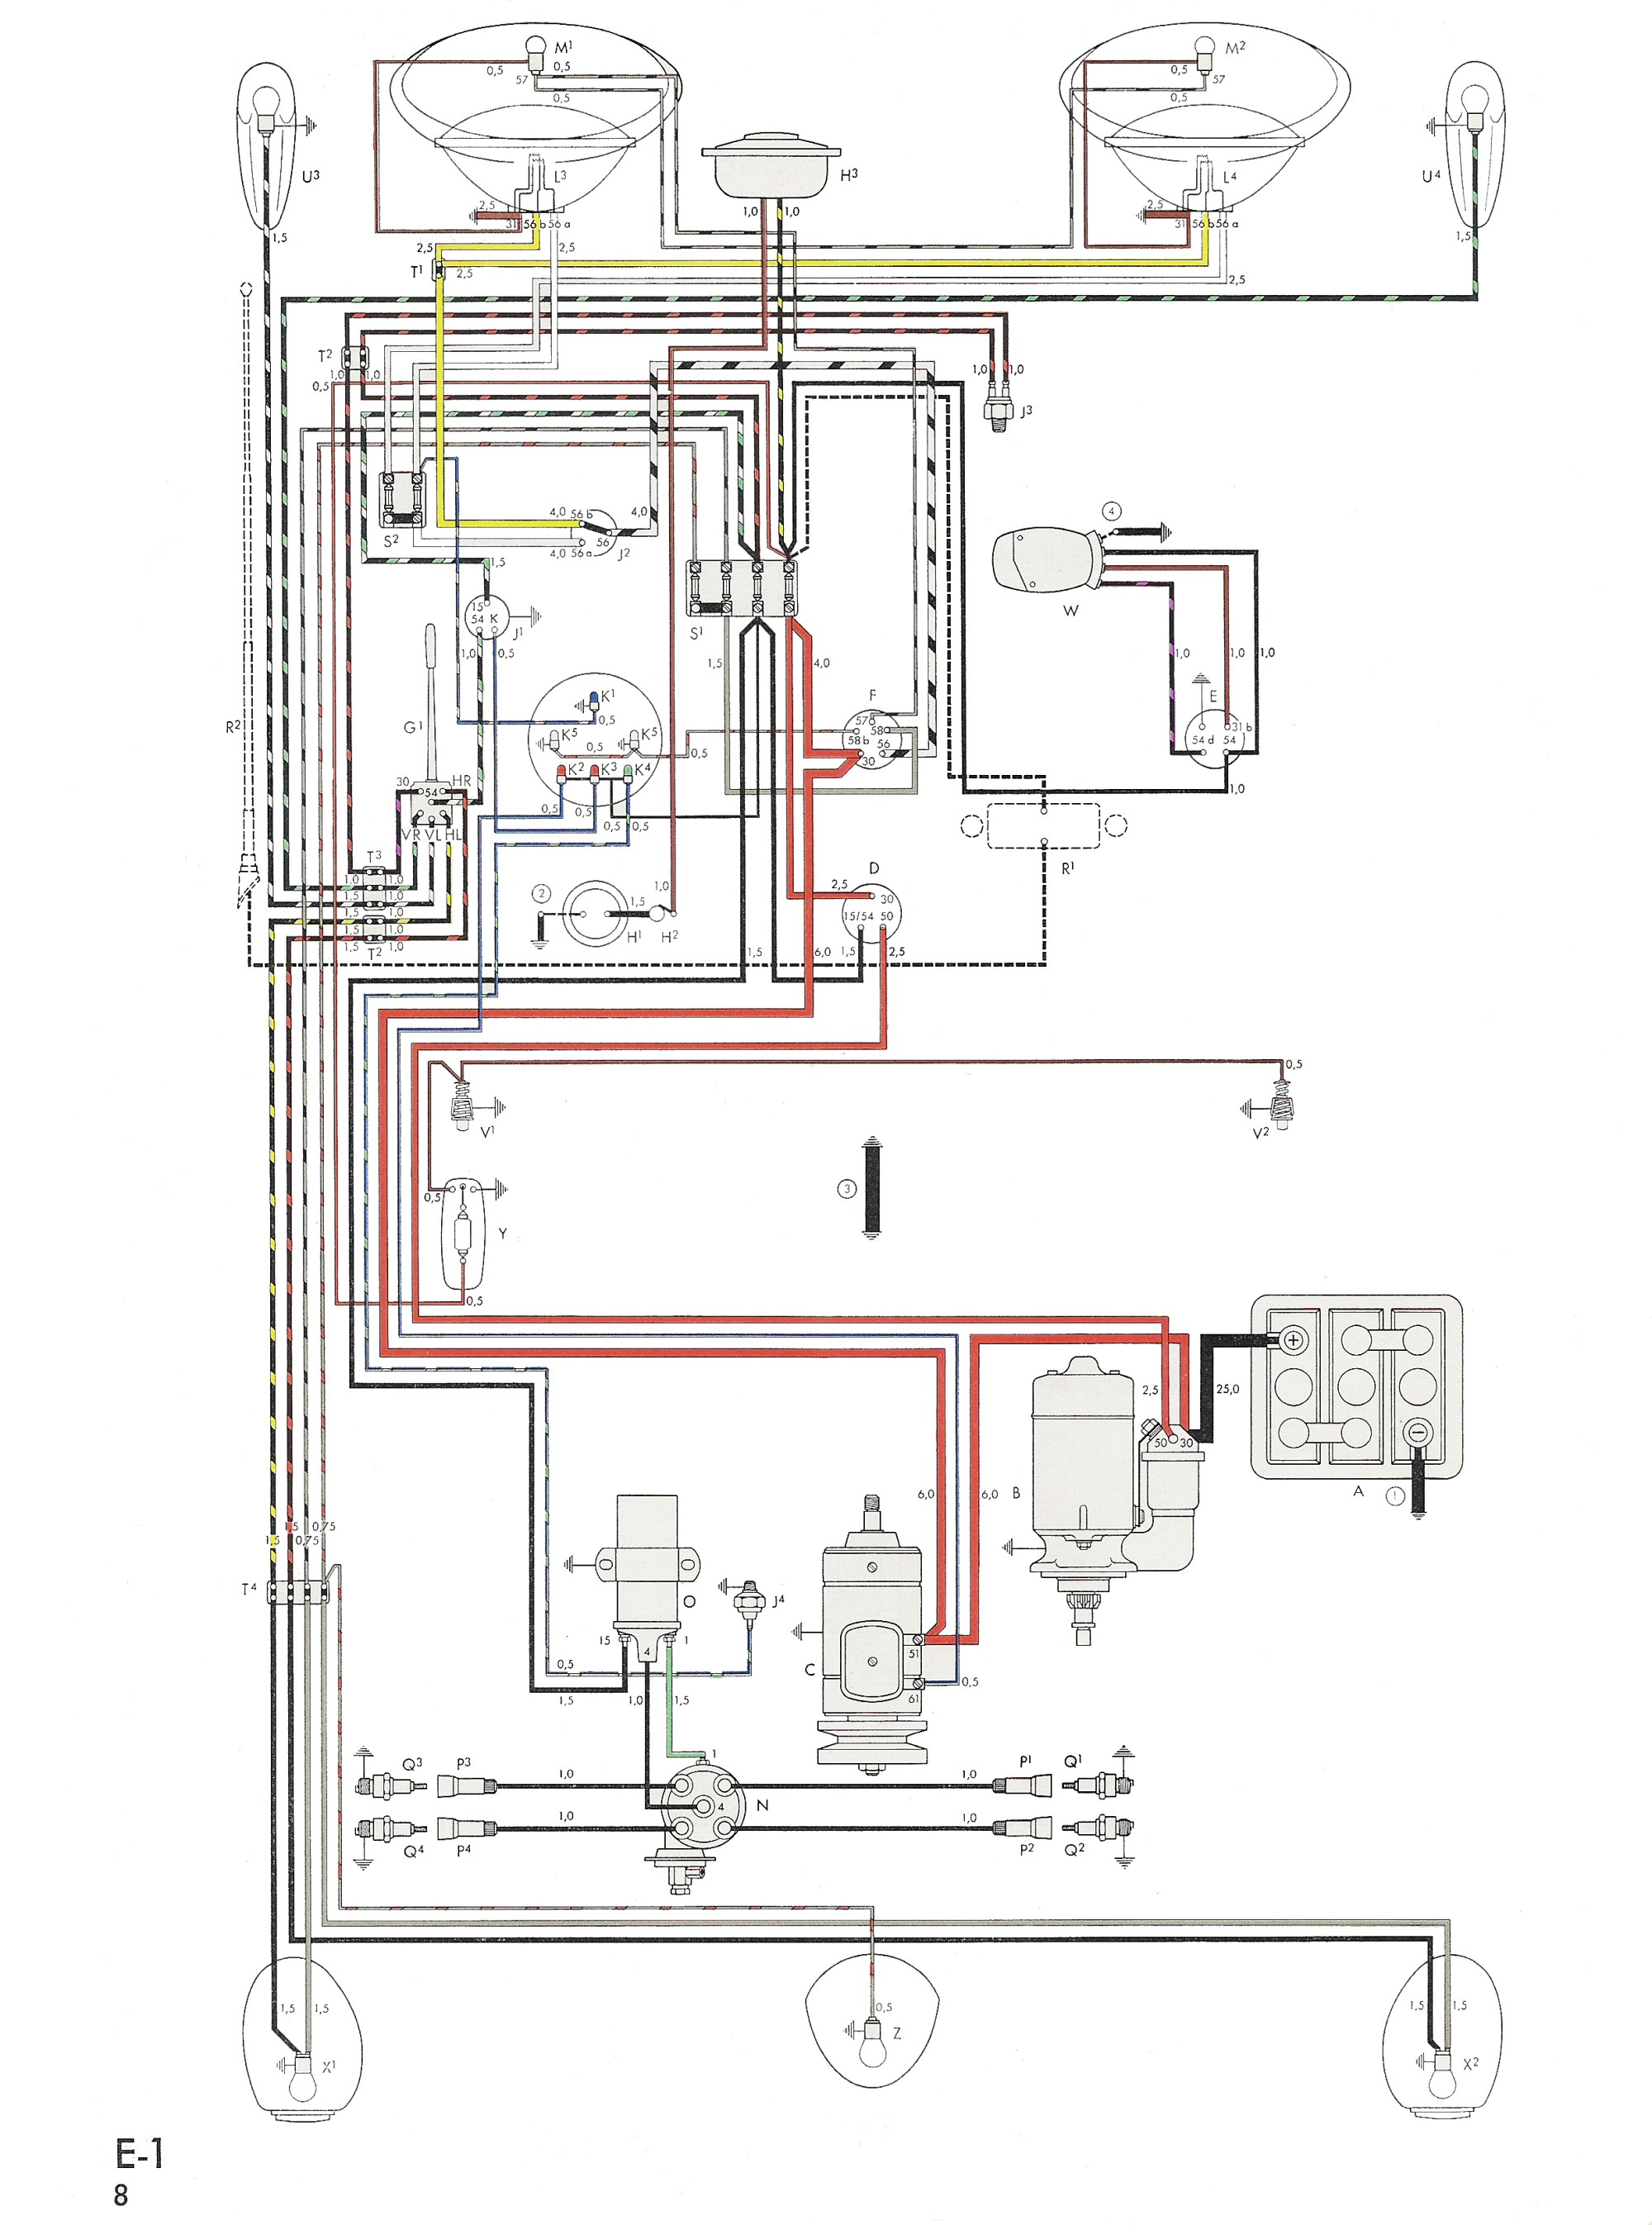 hight resolution of vw motor wiring simple wiring diagram schema vw generator wiring thesamba com type 1 wiring diagrams